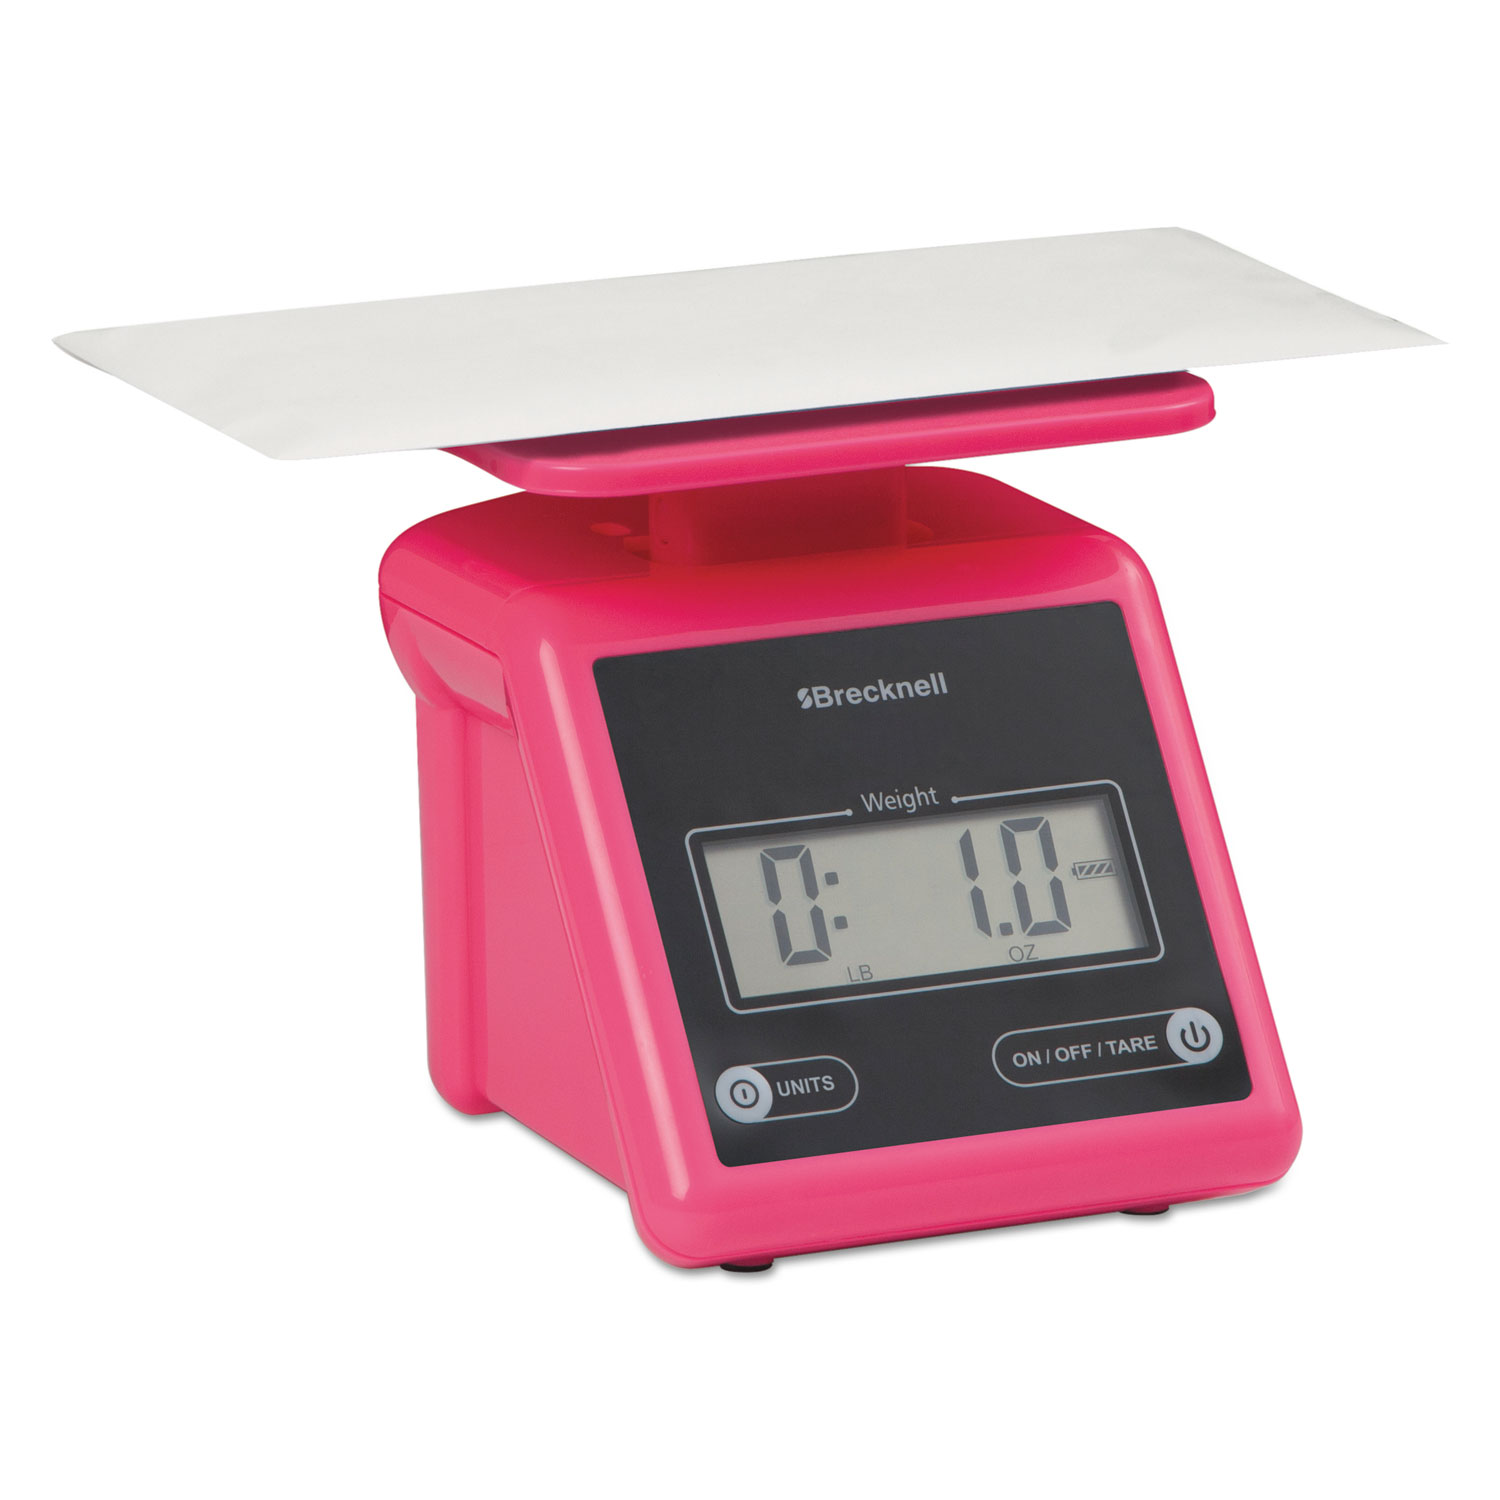 Electronic Postal Scale, 7 lb Capacity, 5 1 2 x 5 1 5 Platform, Pink by Avery Weigh-Tronix